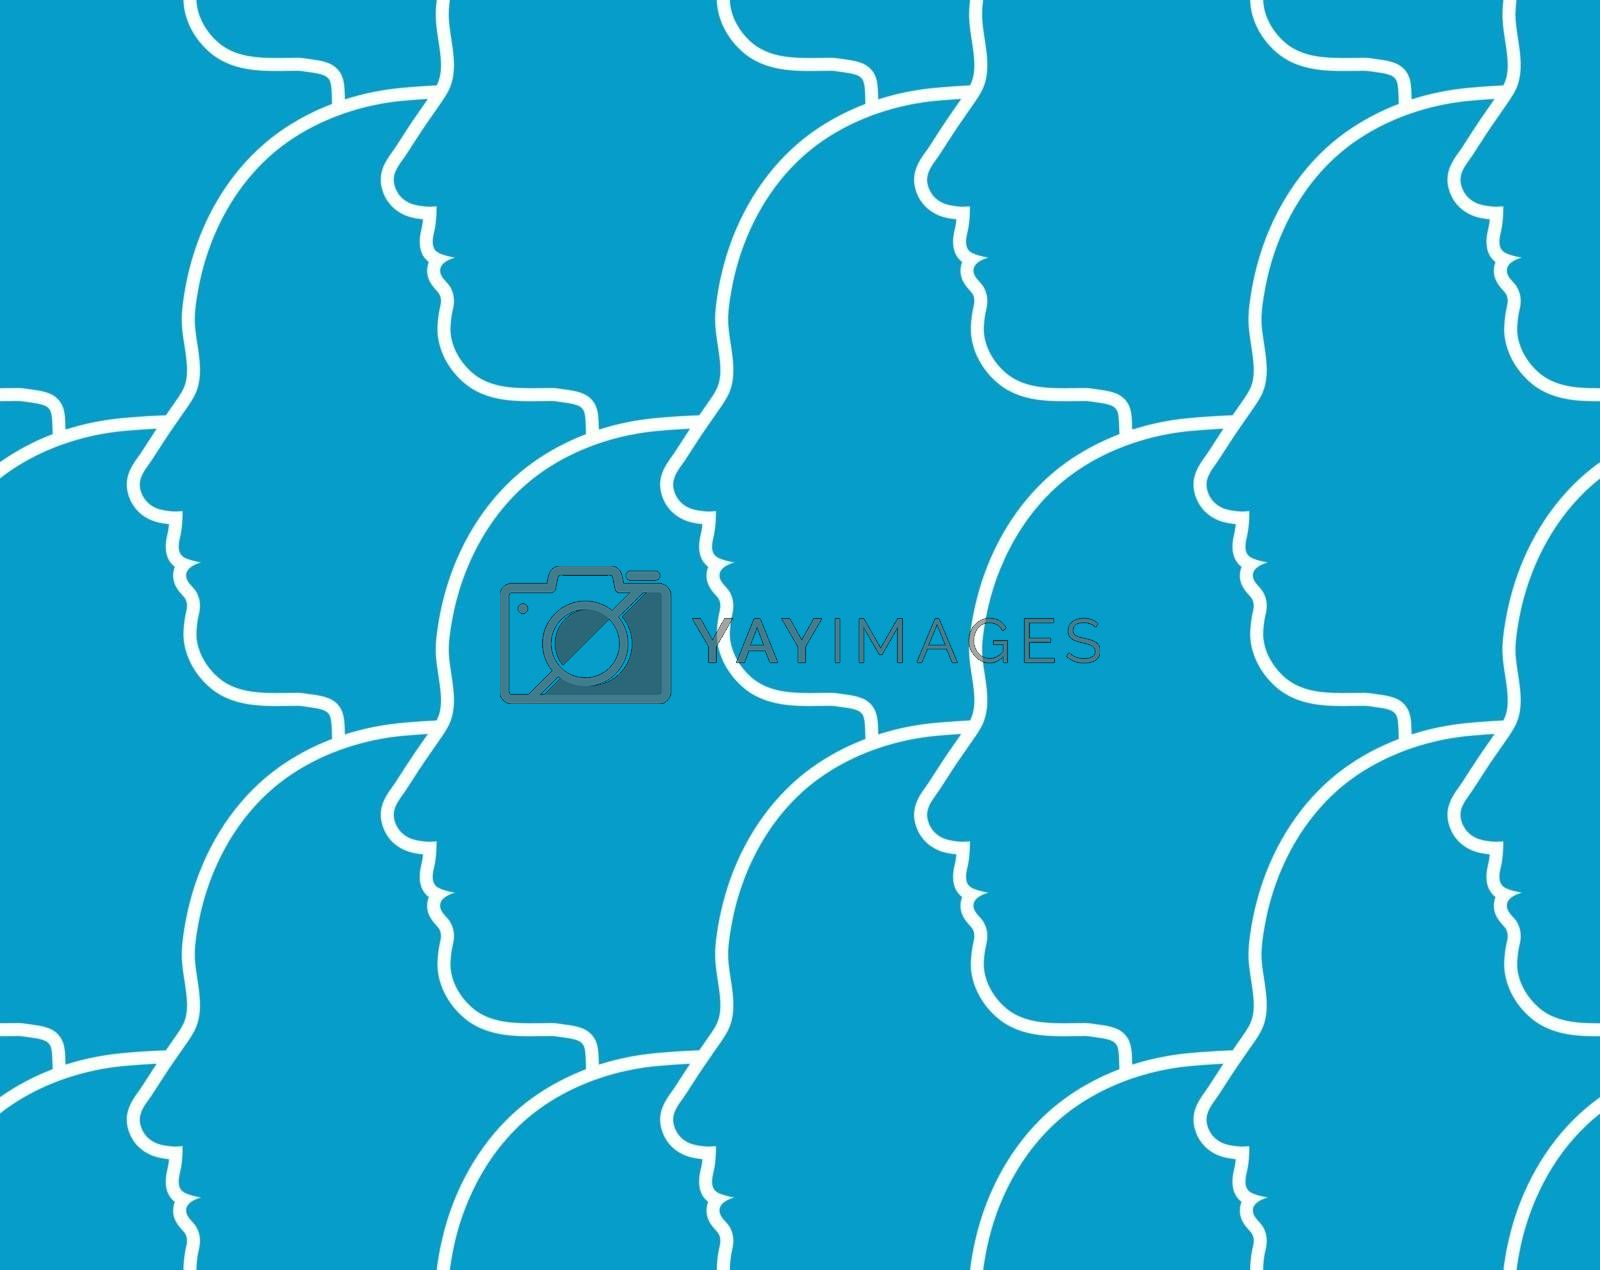 Seamless pattern of the outline of human heads in profile overlapping each other all facing in the same direction